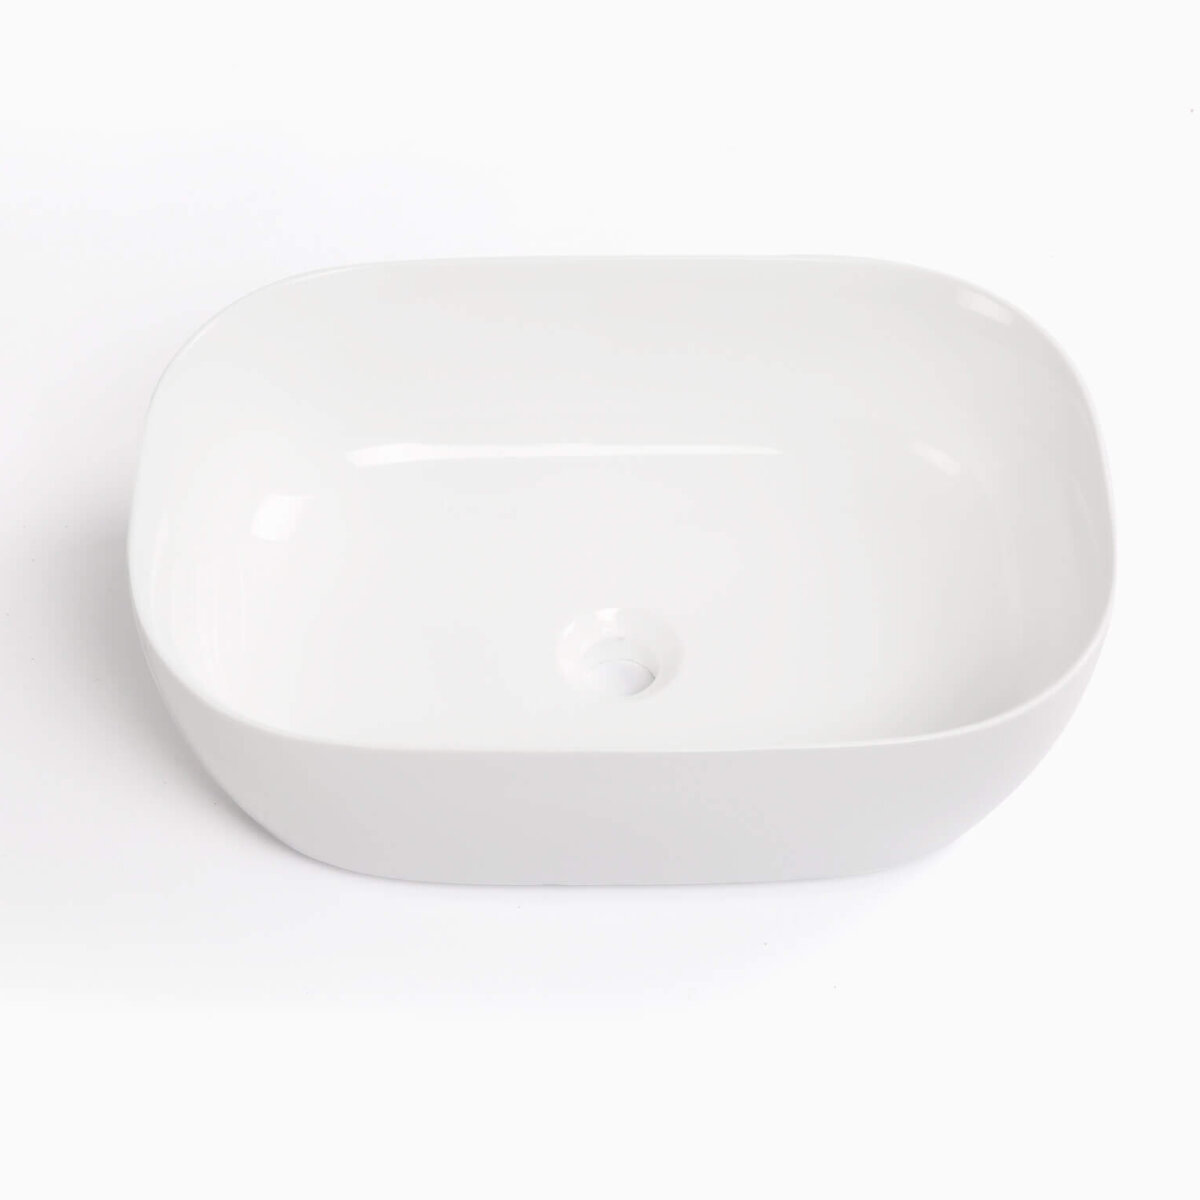 Clear Cube Barcelona Vanity Basin 500x345x160mm_Stiles_Product_Image2